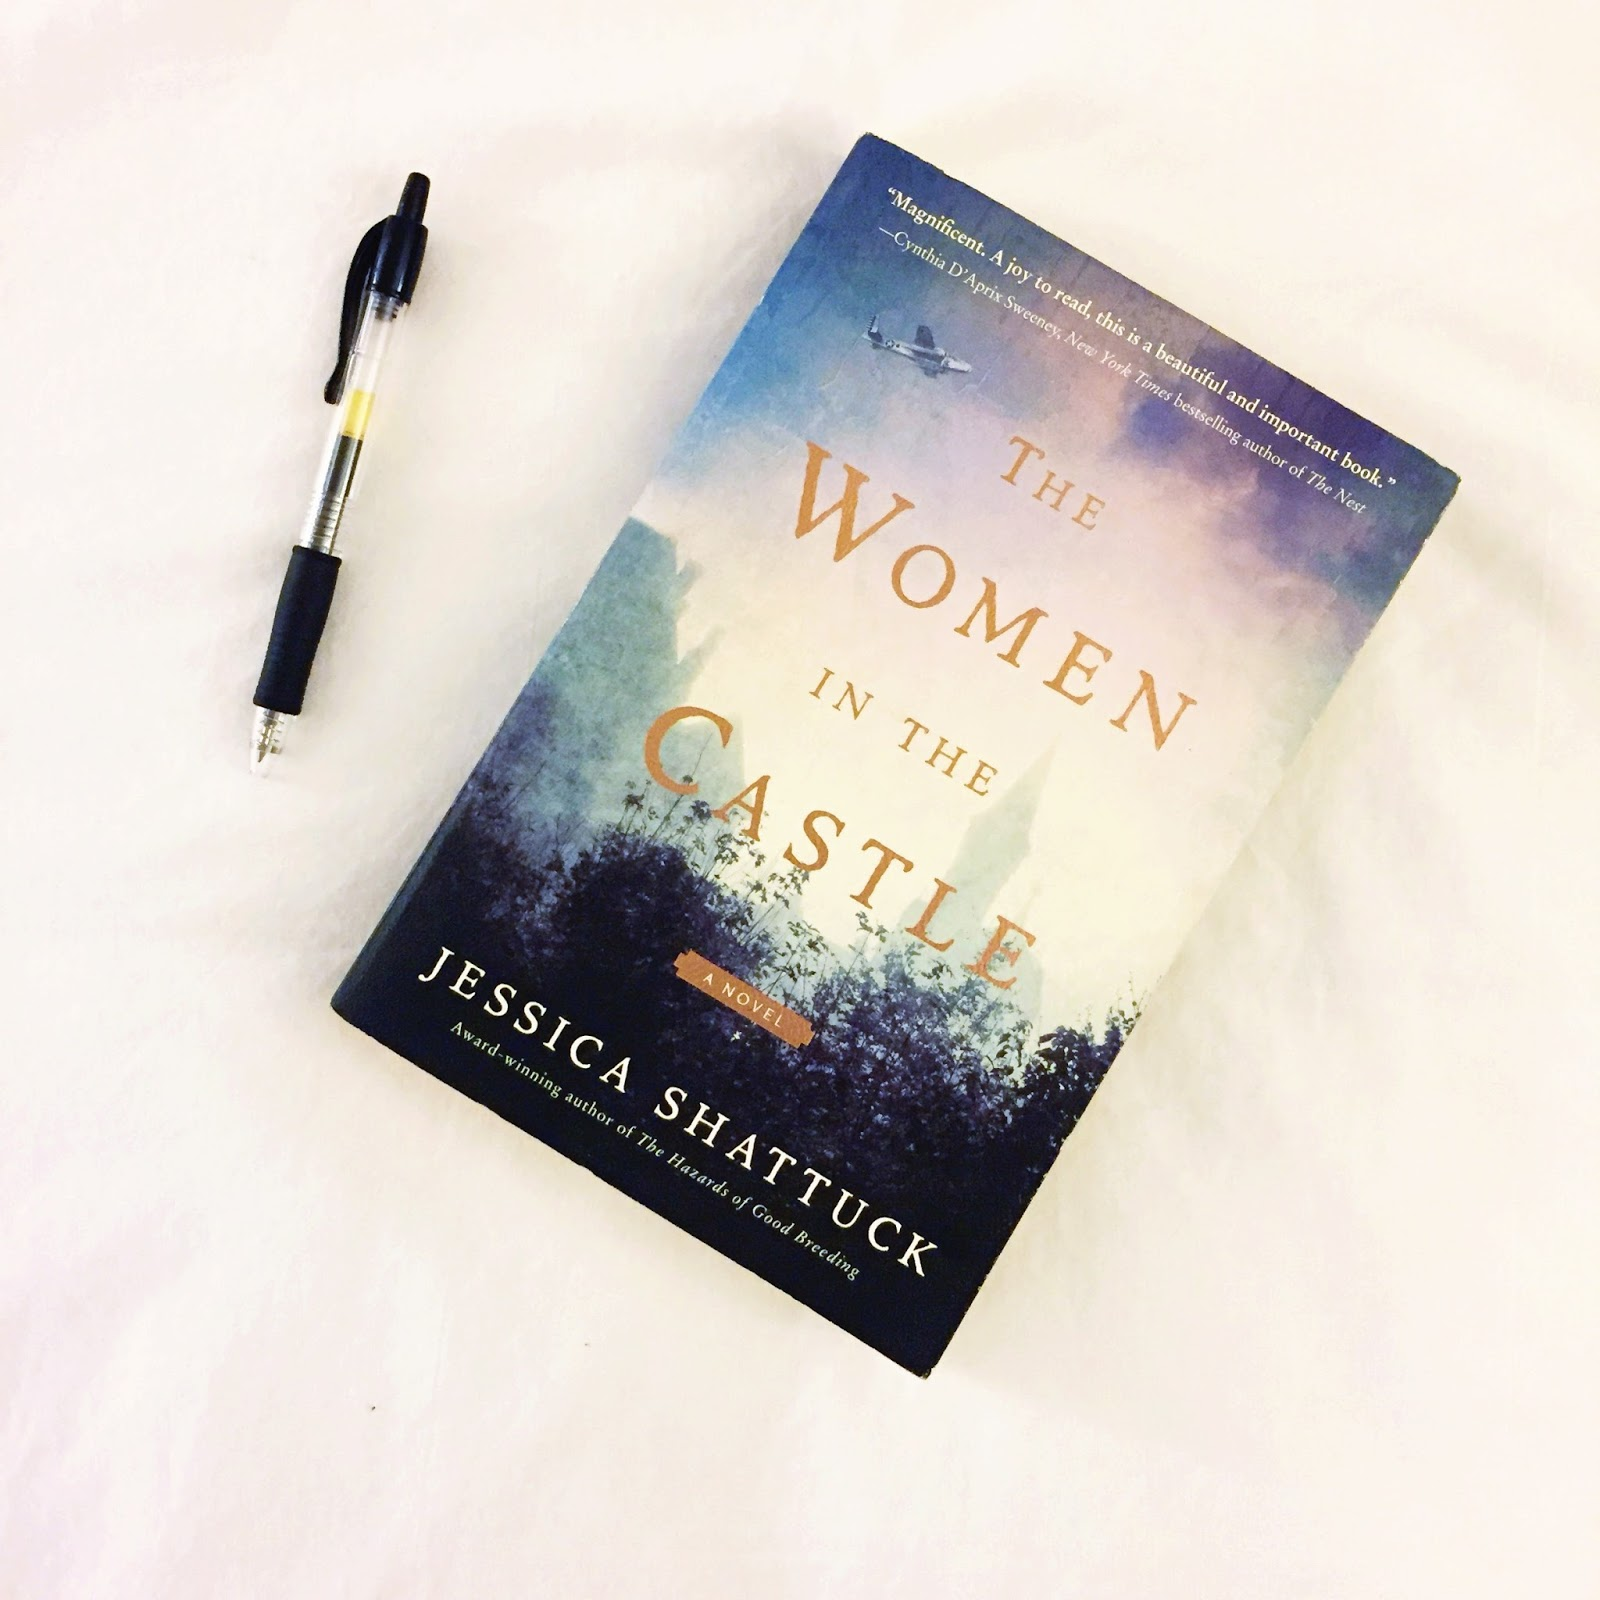 Book review of The Women in the Castle by Jessica Shattuck | kathleenhelen